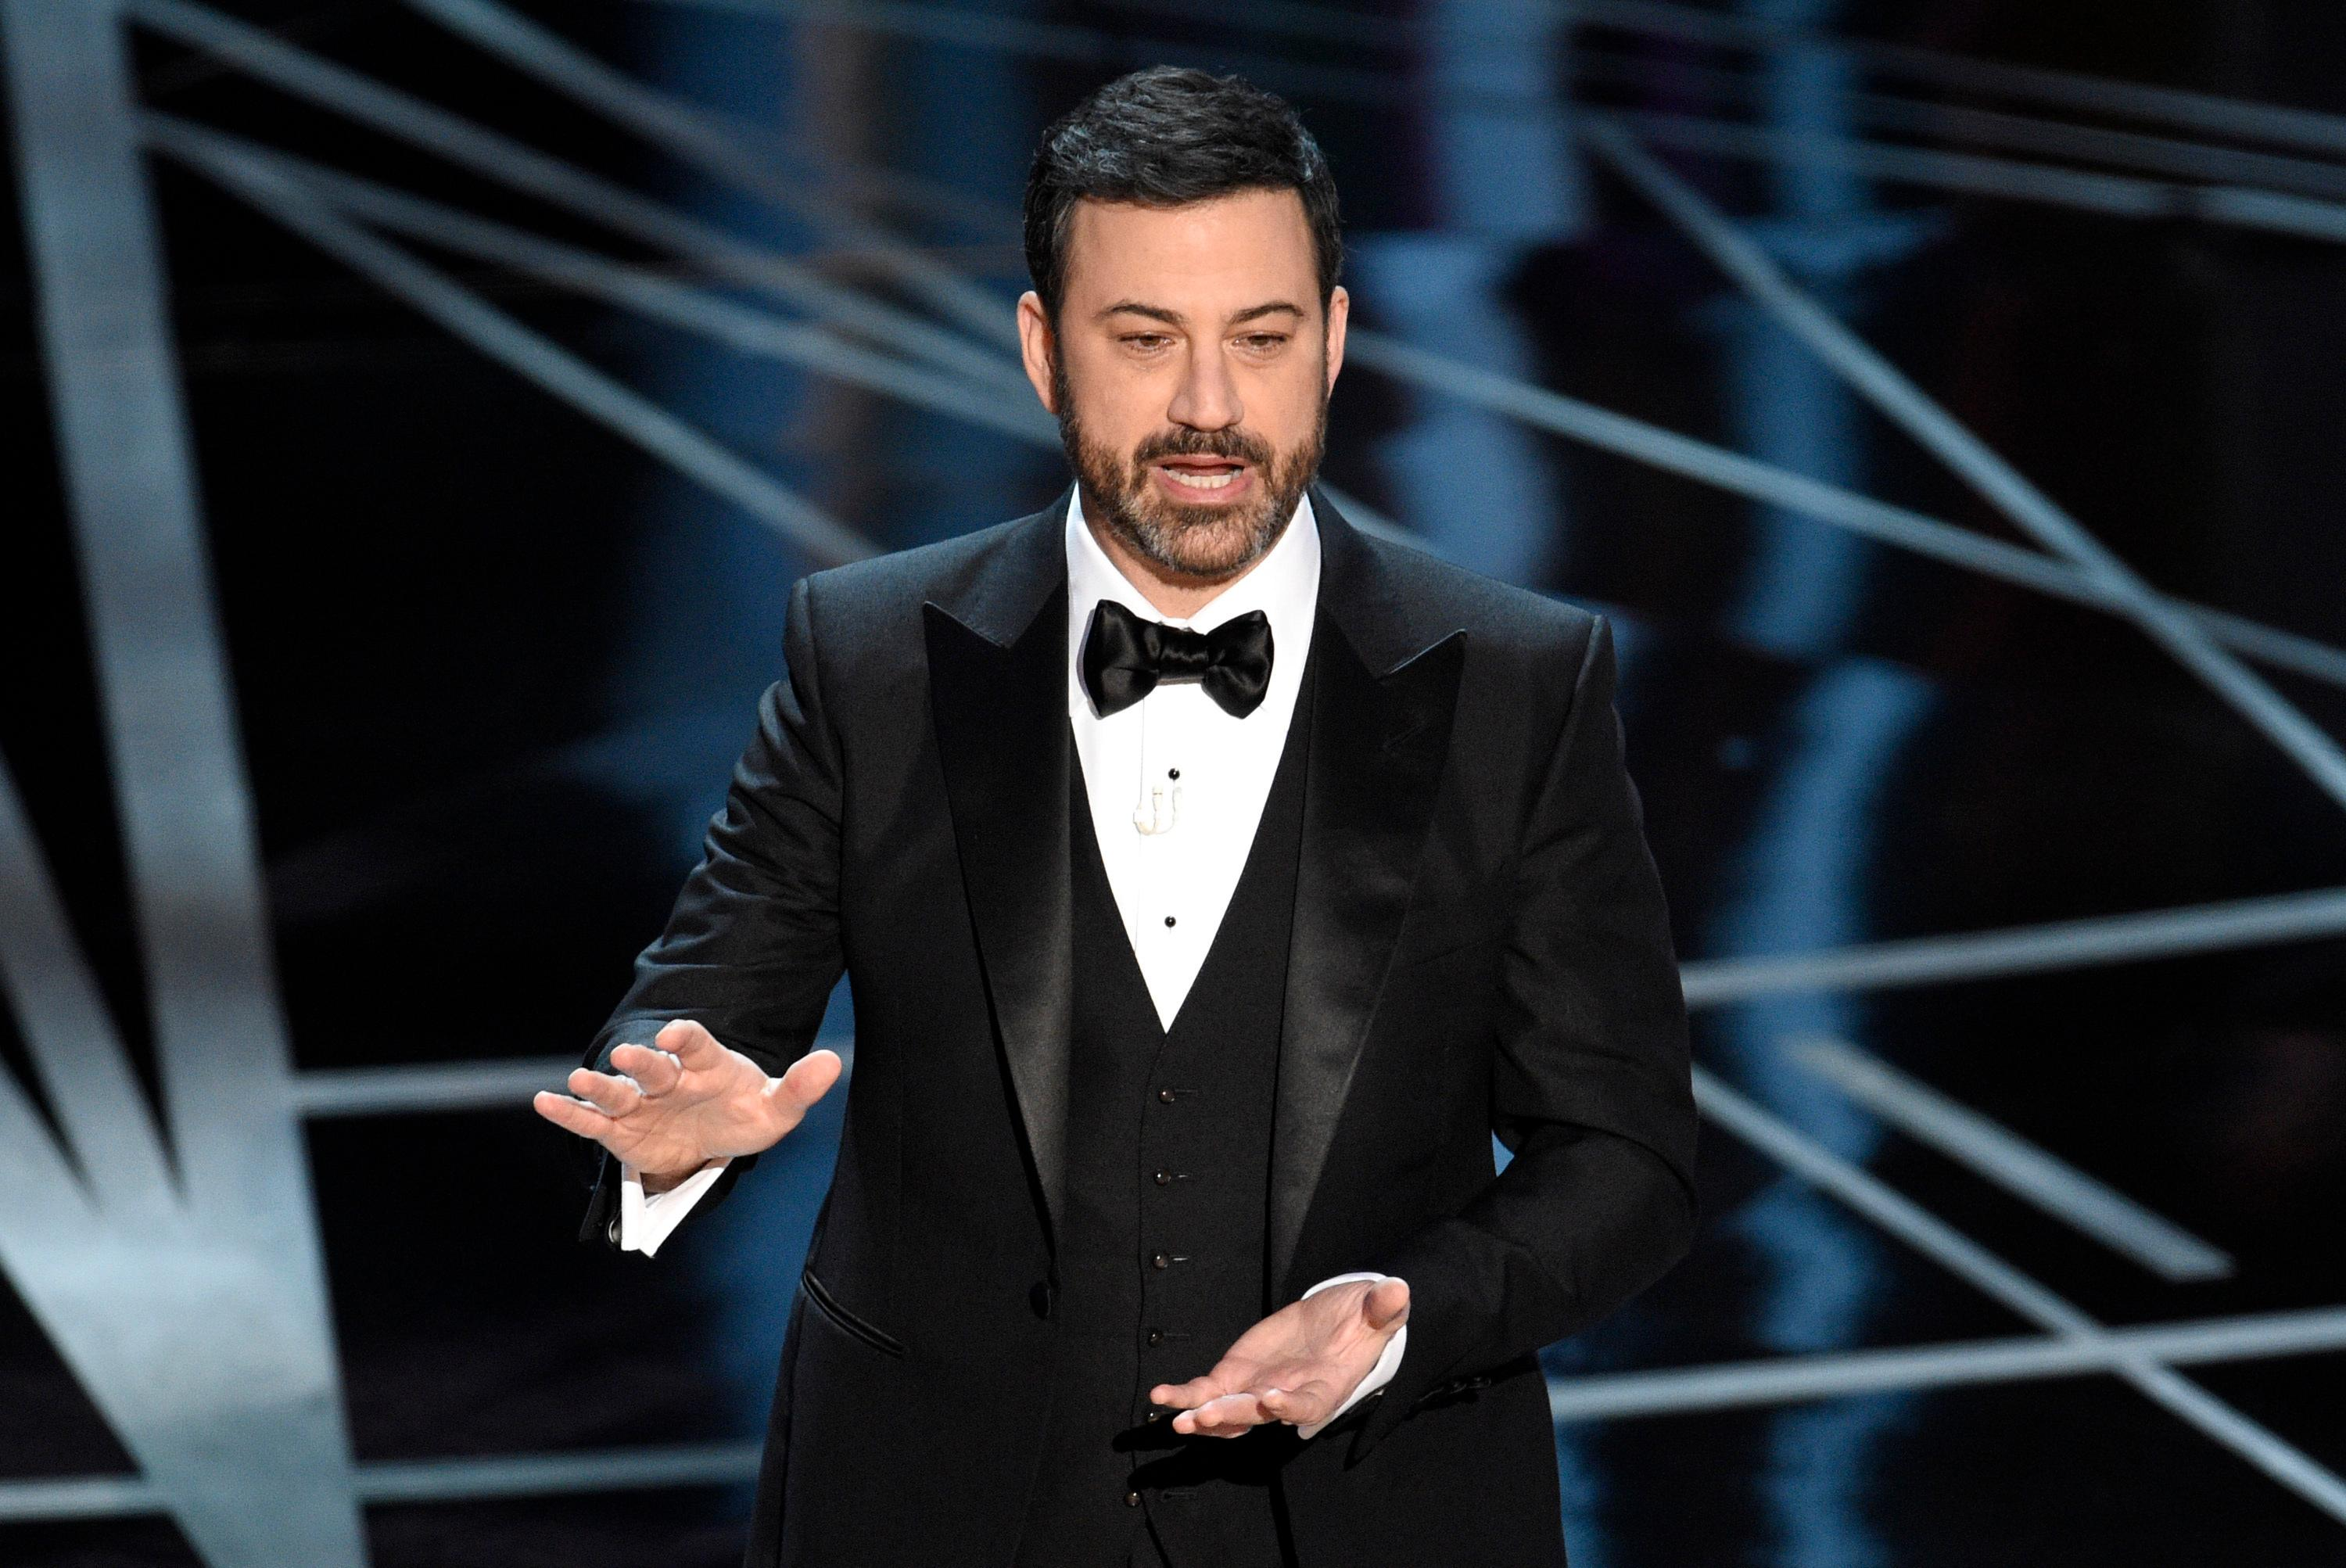 FILE - In this Feb. 26, 2017 file photo, host Jimmy Kimmel appears at the Oscars in Los Angeles. Late-night comics decr